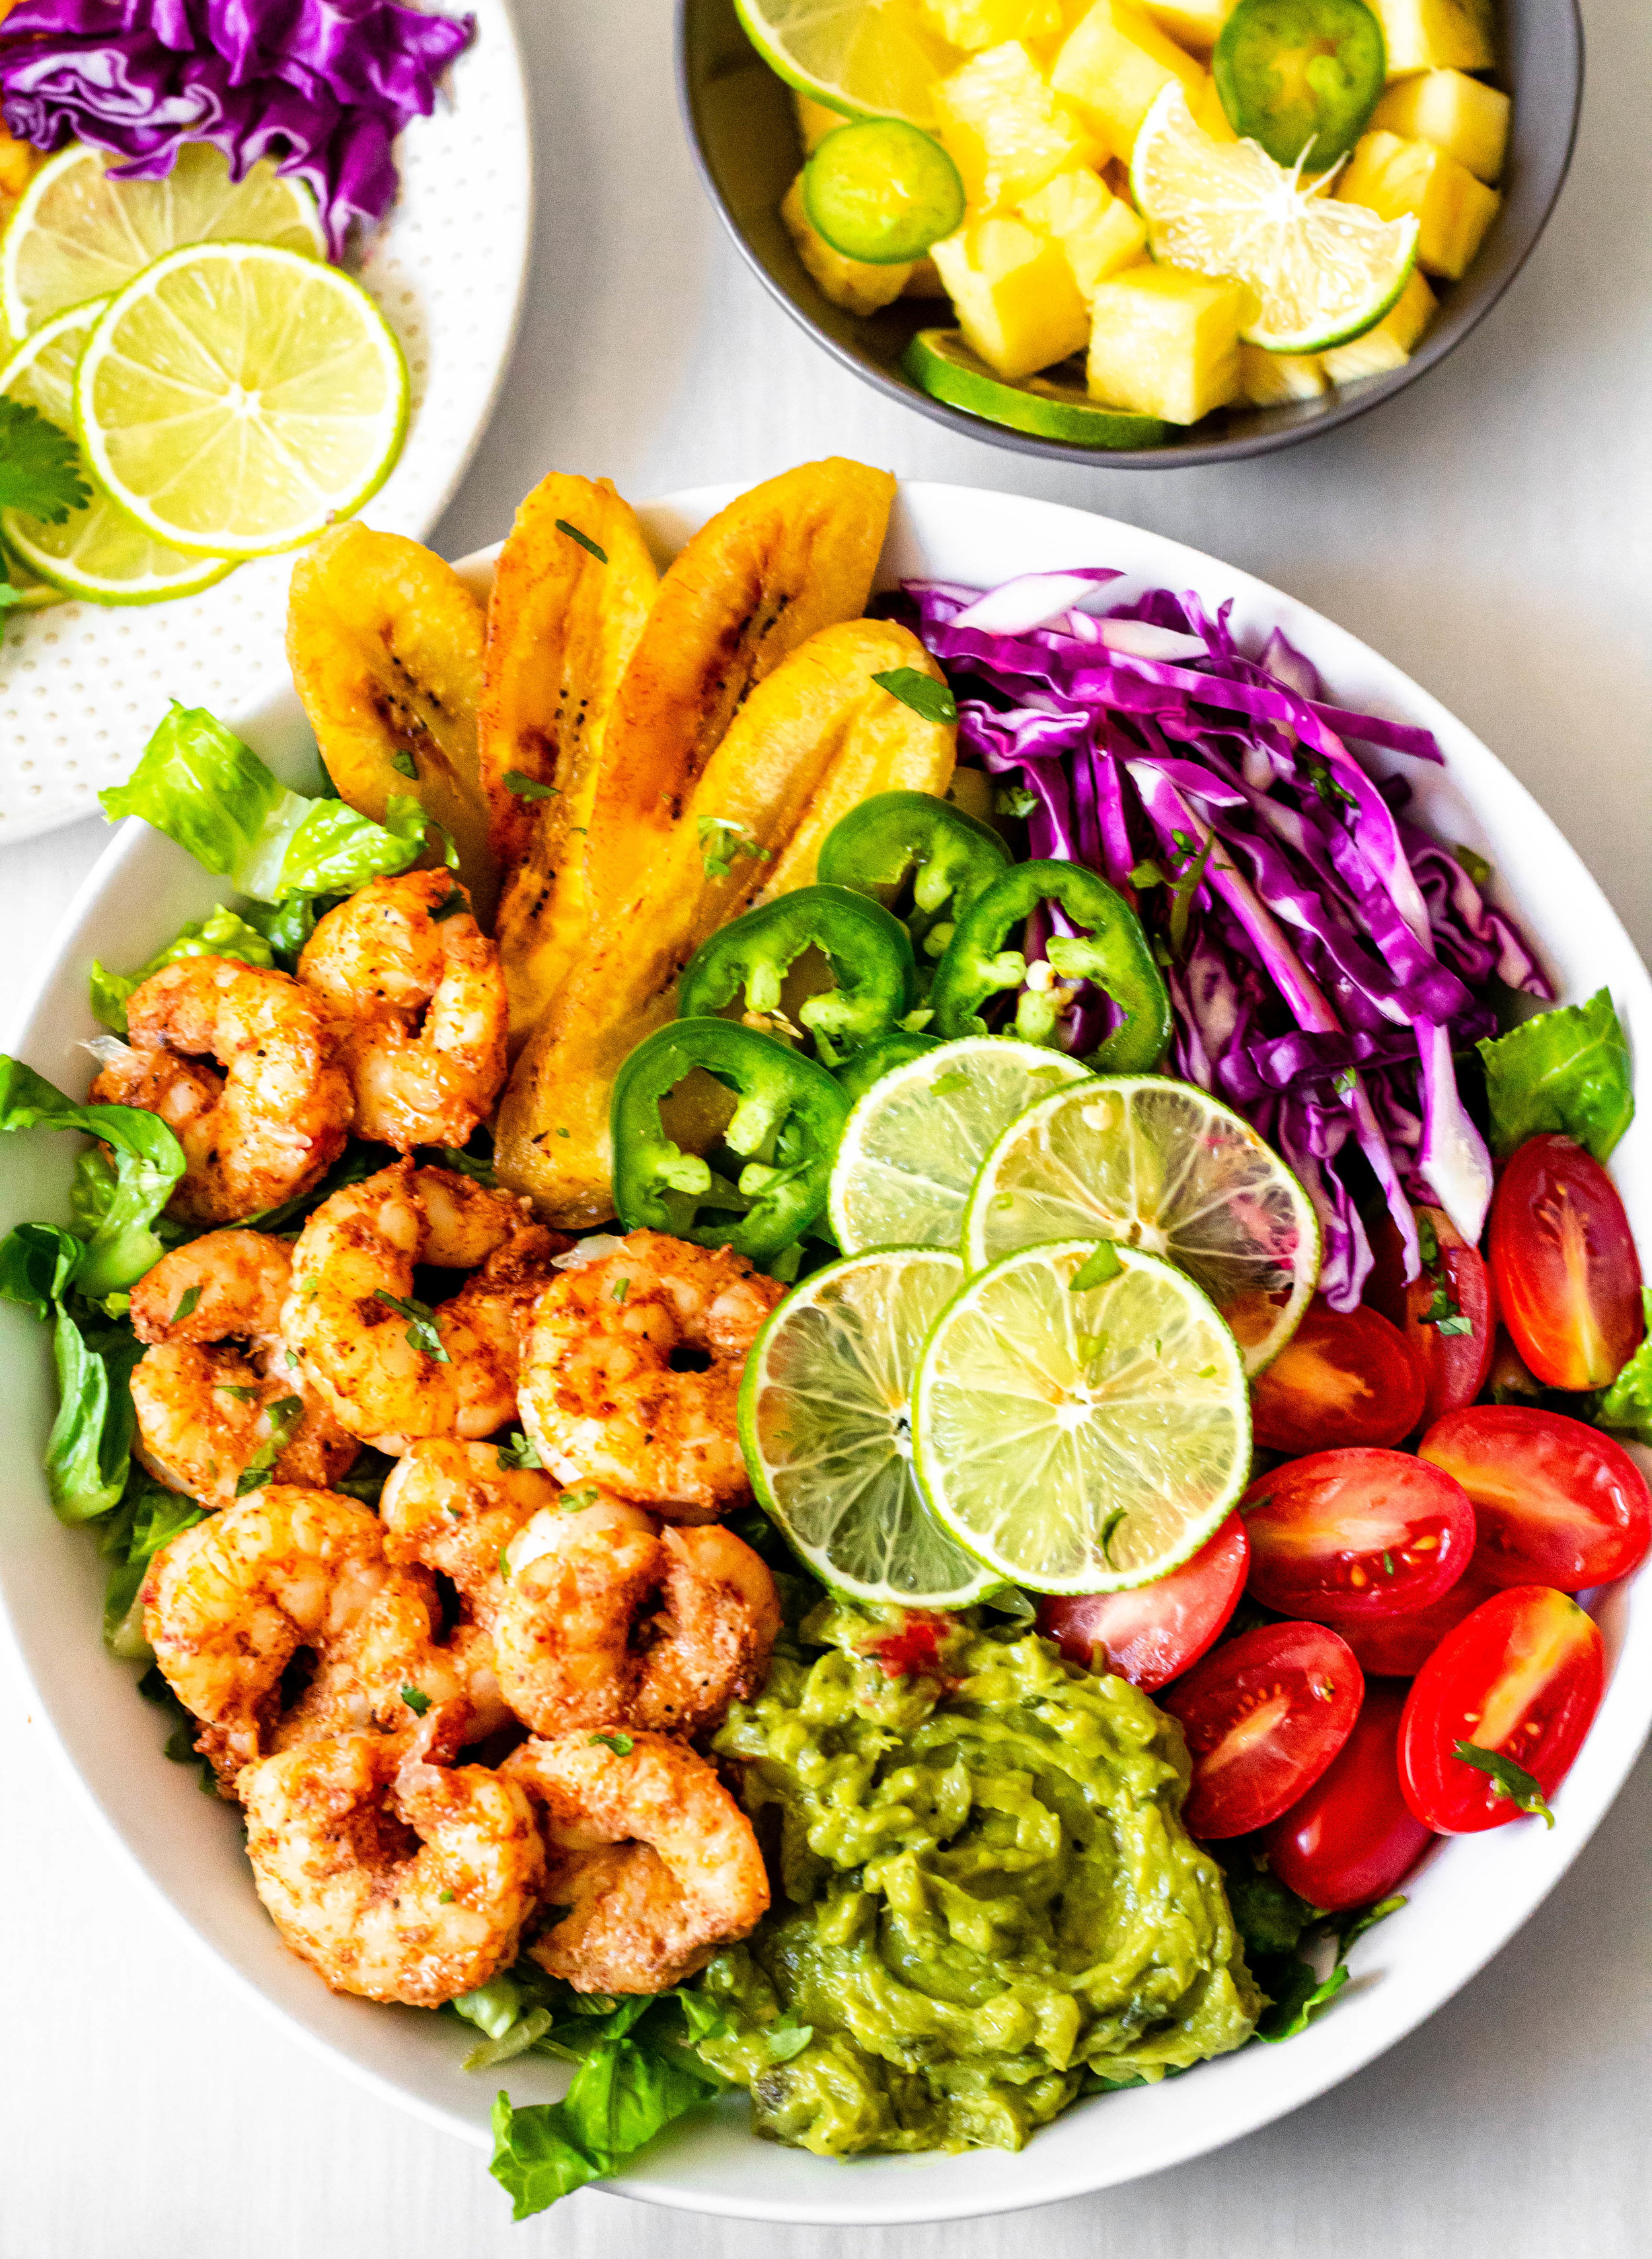 Chili Lime Shrimp Salad.jpg